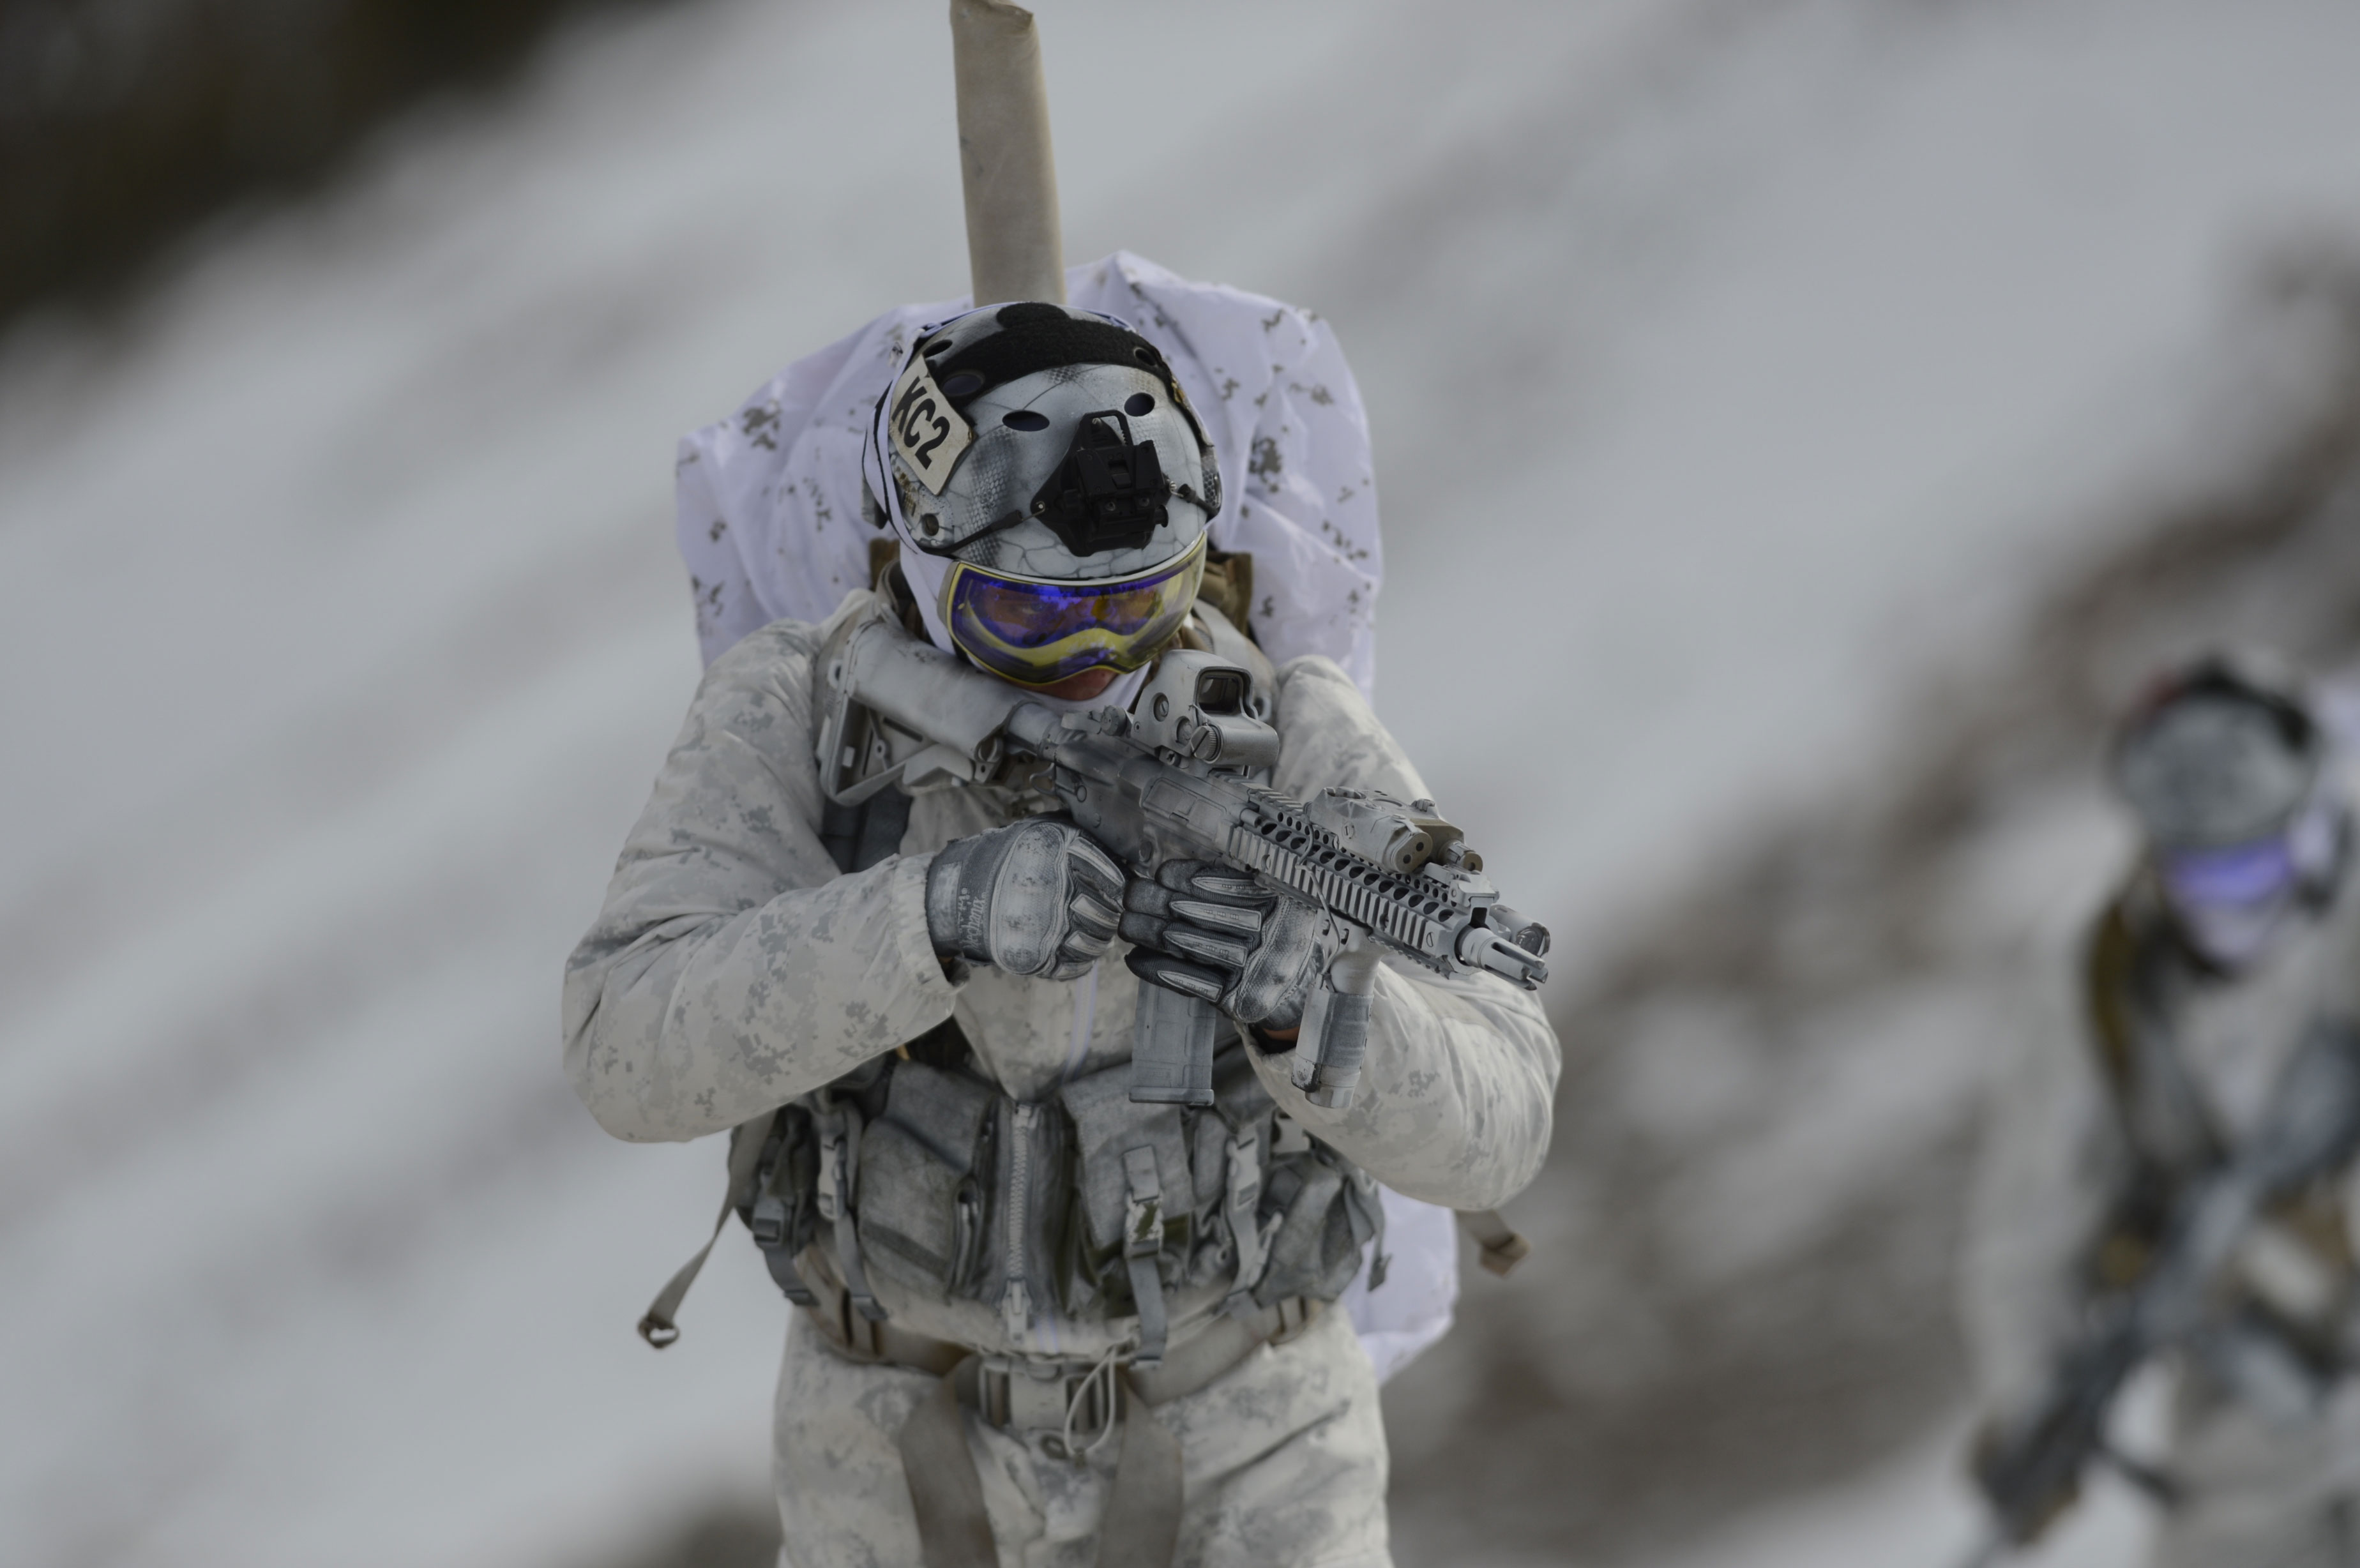 Top Photo : SEALs operating in winter conditions RR21